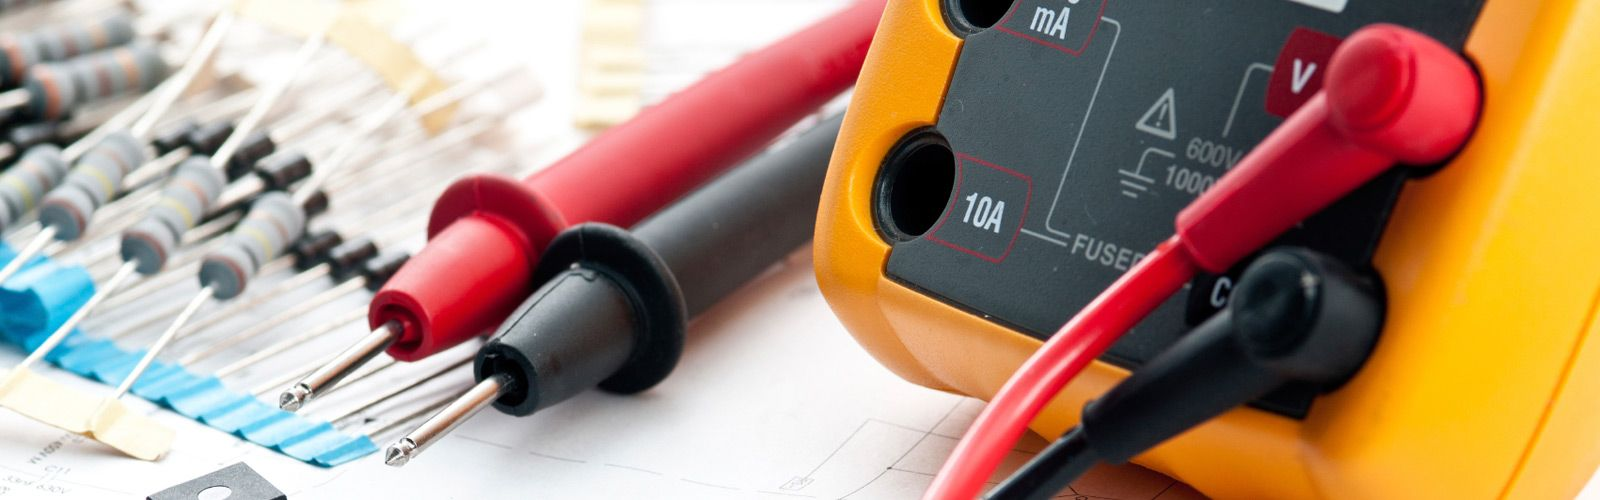 you can get best electricianinbeckenham from 1st choice electrical